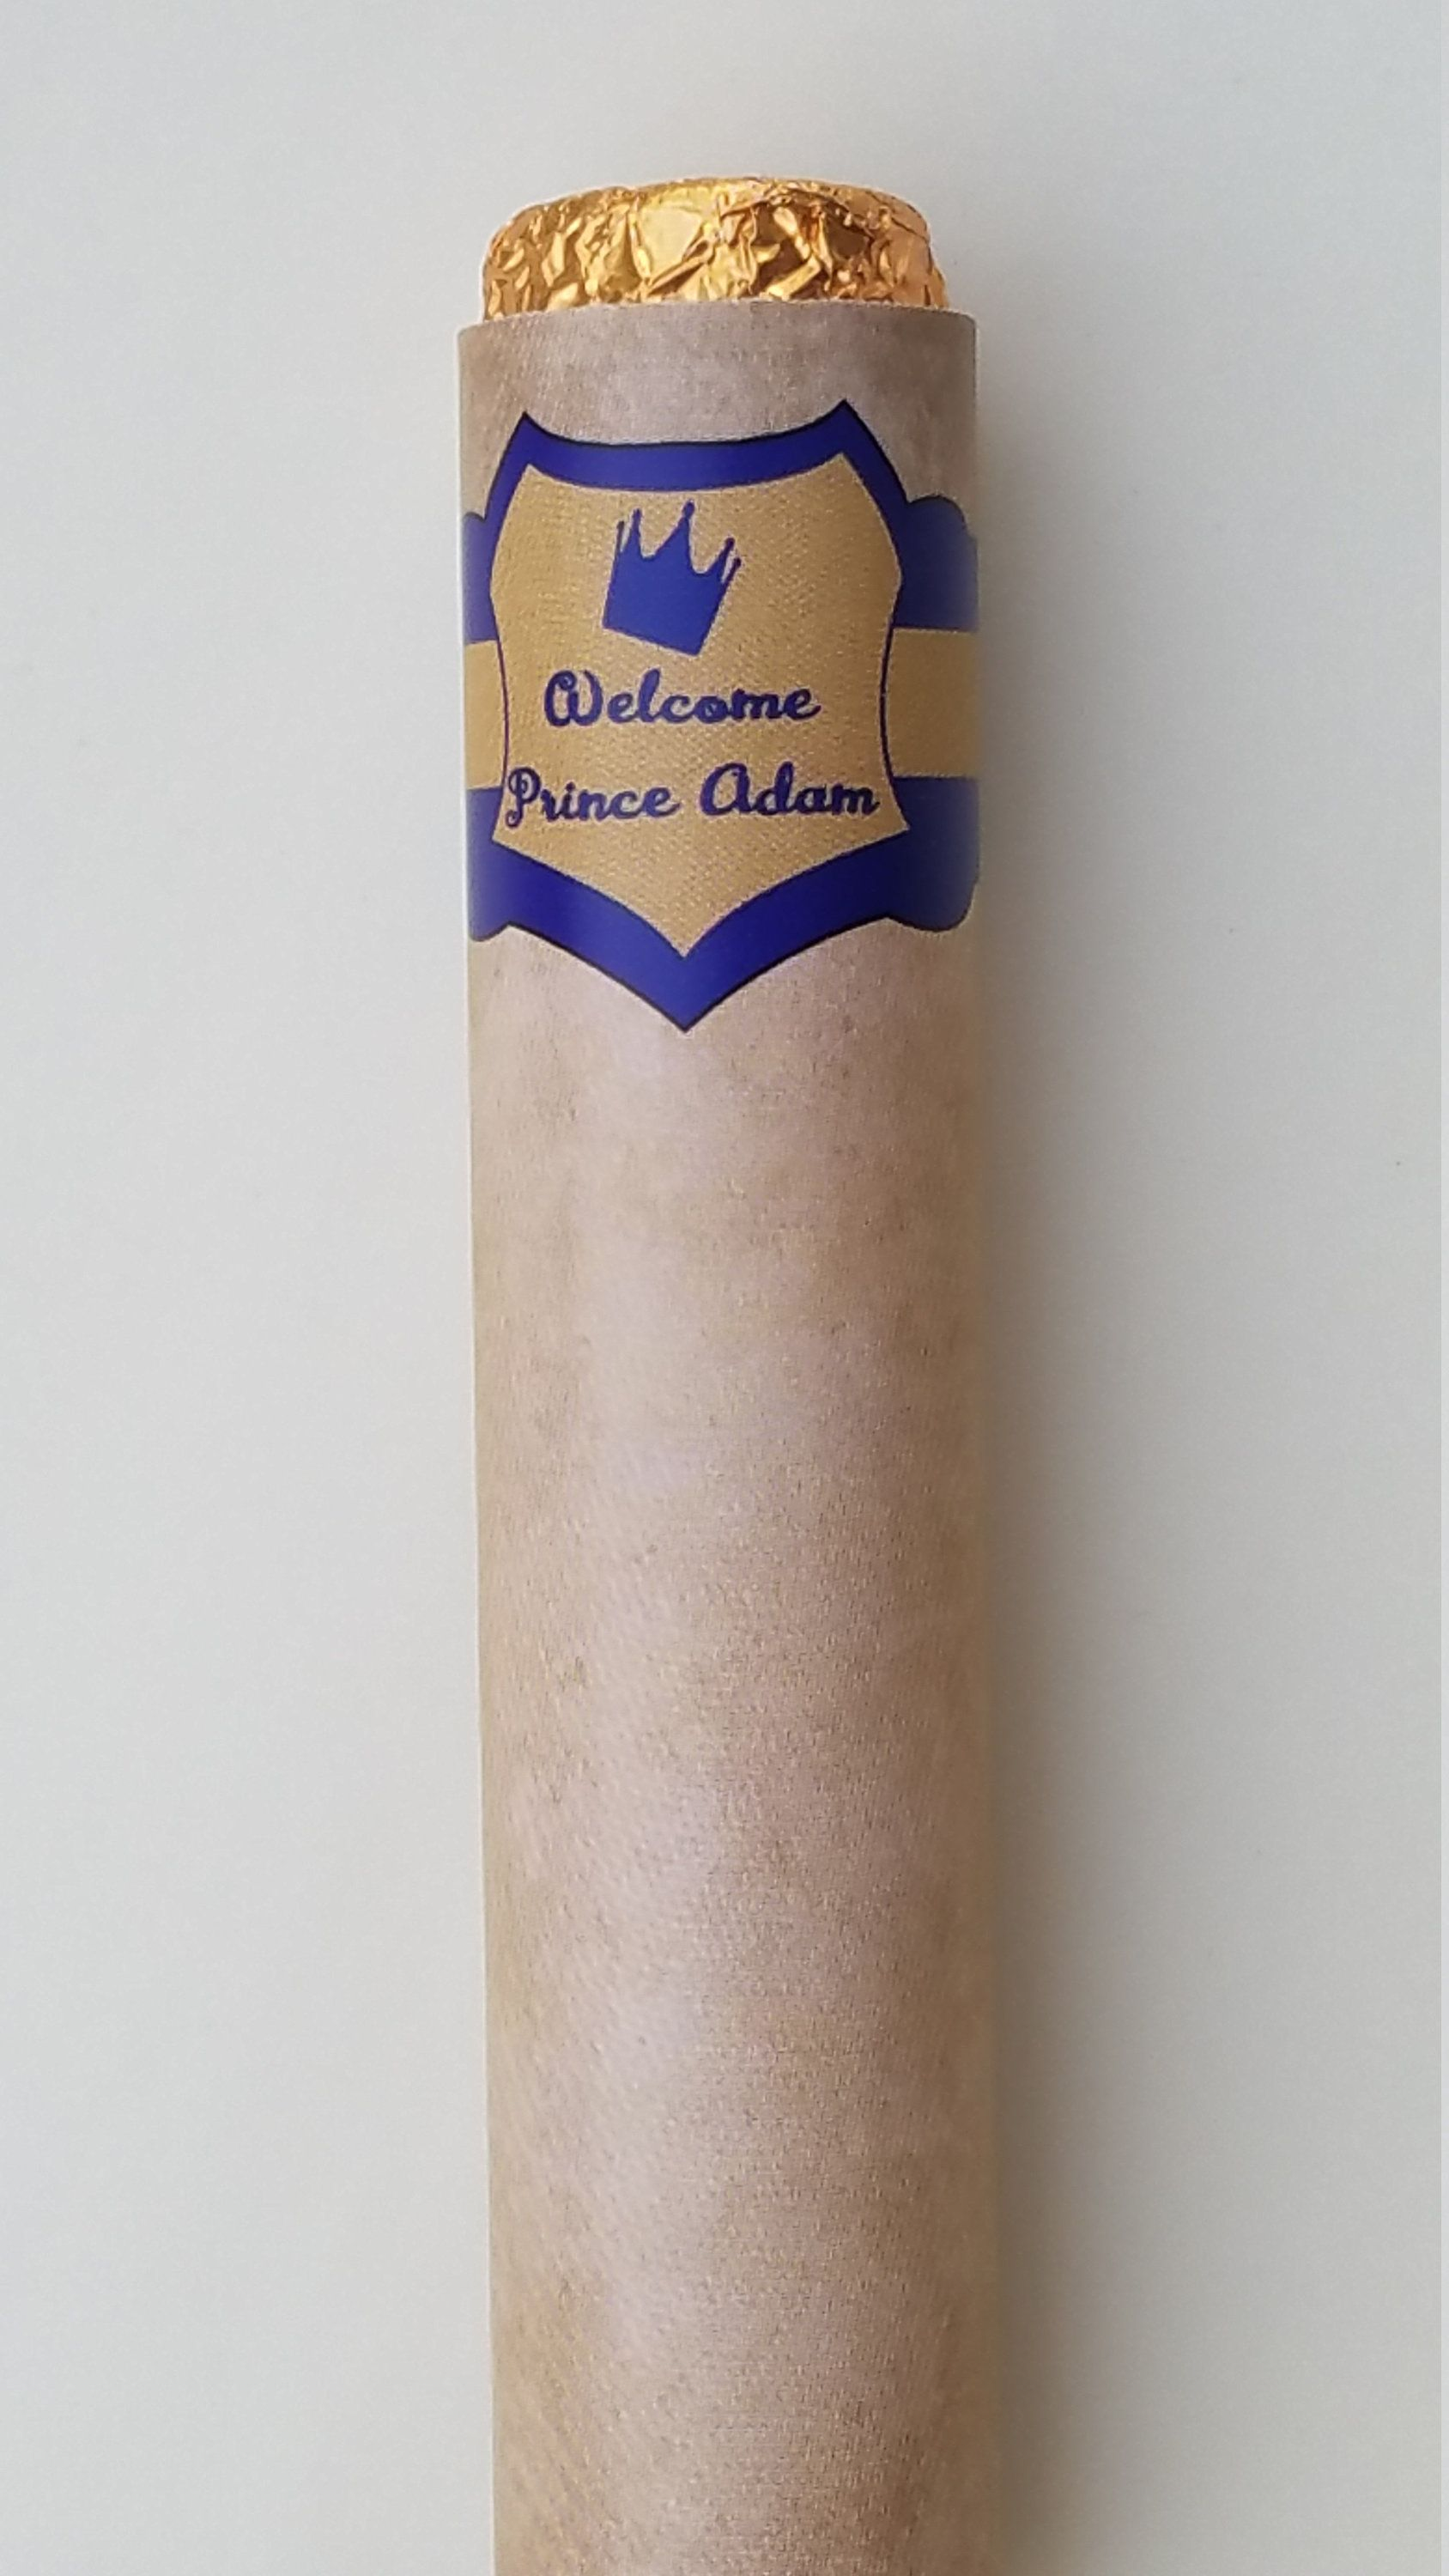 Chocolate Rolo cigars Royal prince crown Baby Shower favors